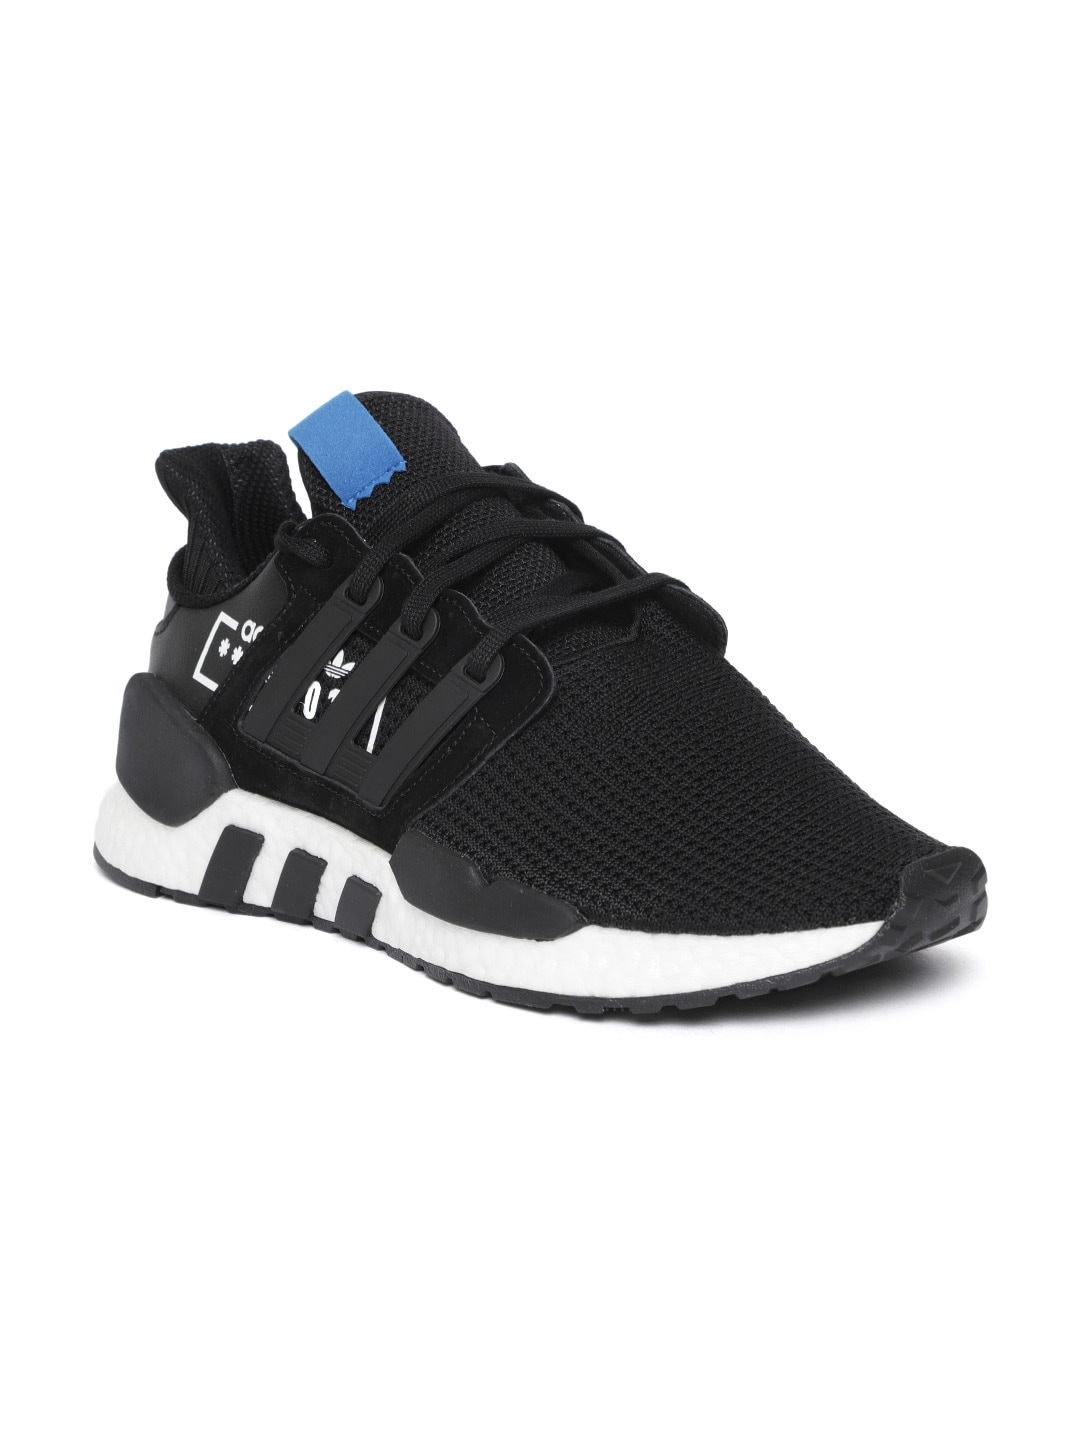 the latest 8f6bb de648 super popular 20cc7 5e59a adidas eqt bask adv 9118 ...